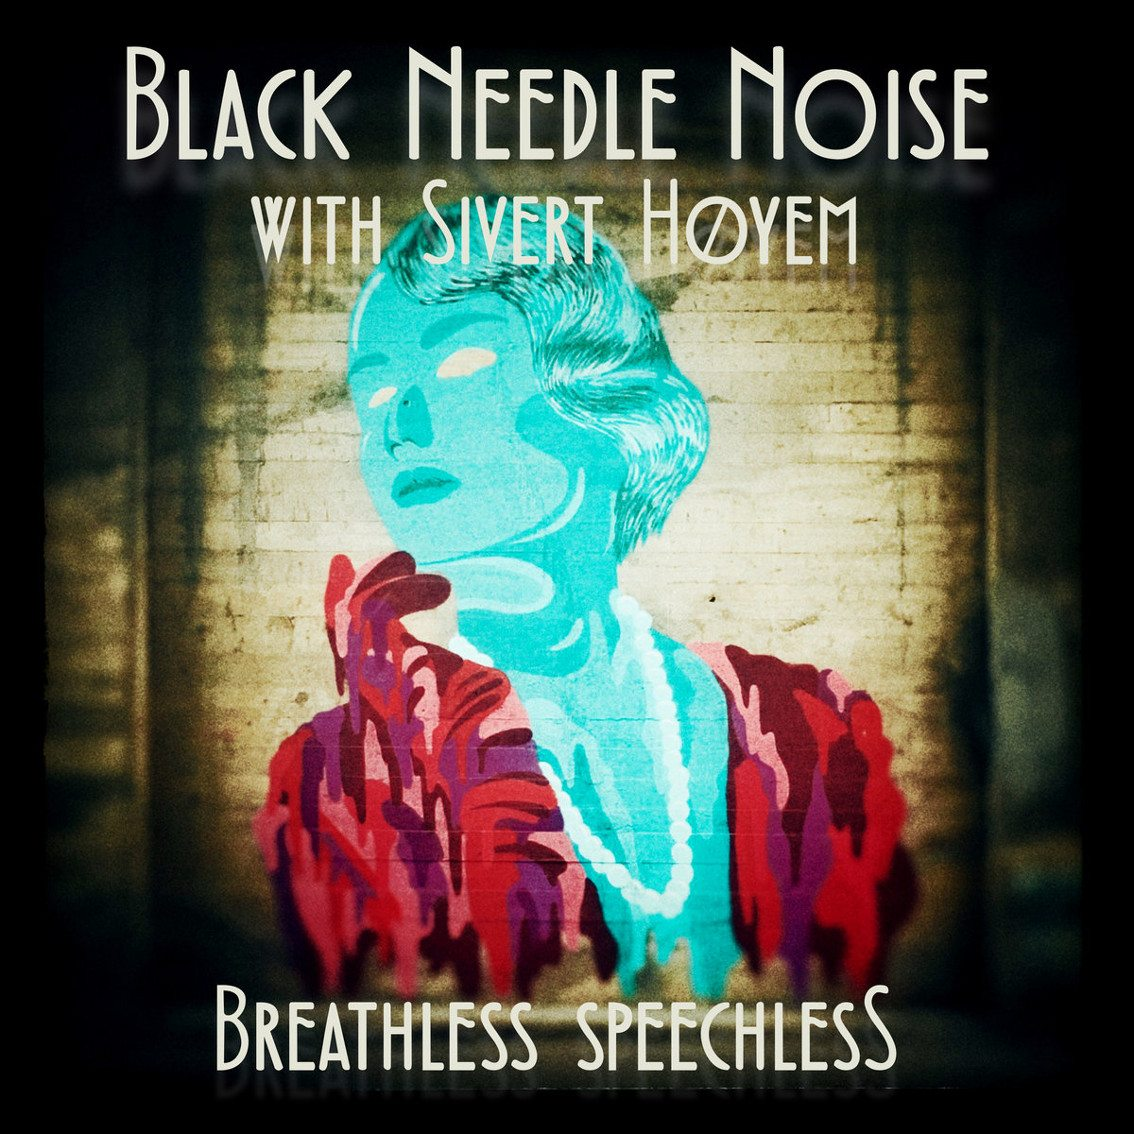 Black Needle Noise joins up with Sivert Høyem for brand new track'Breathless Speechless' - available now as a name-your-price single track